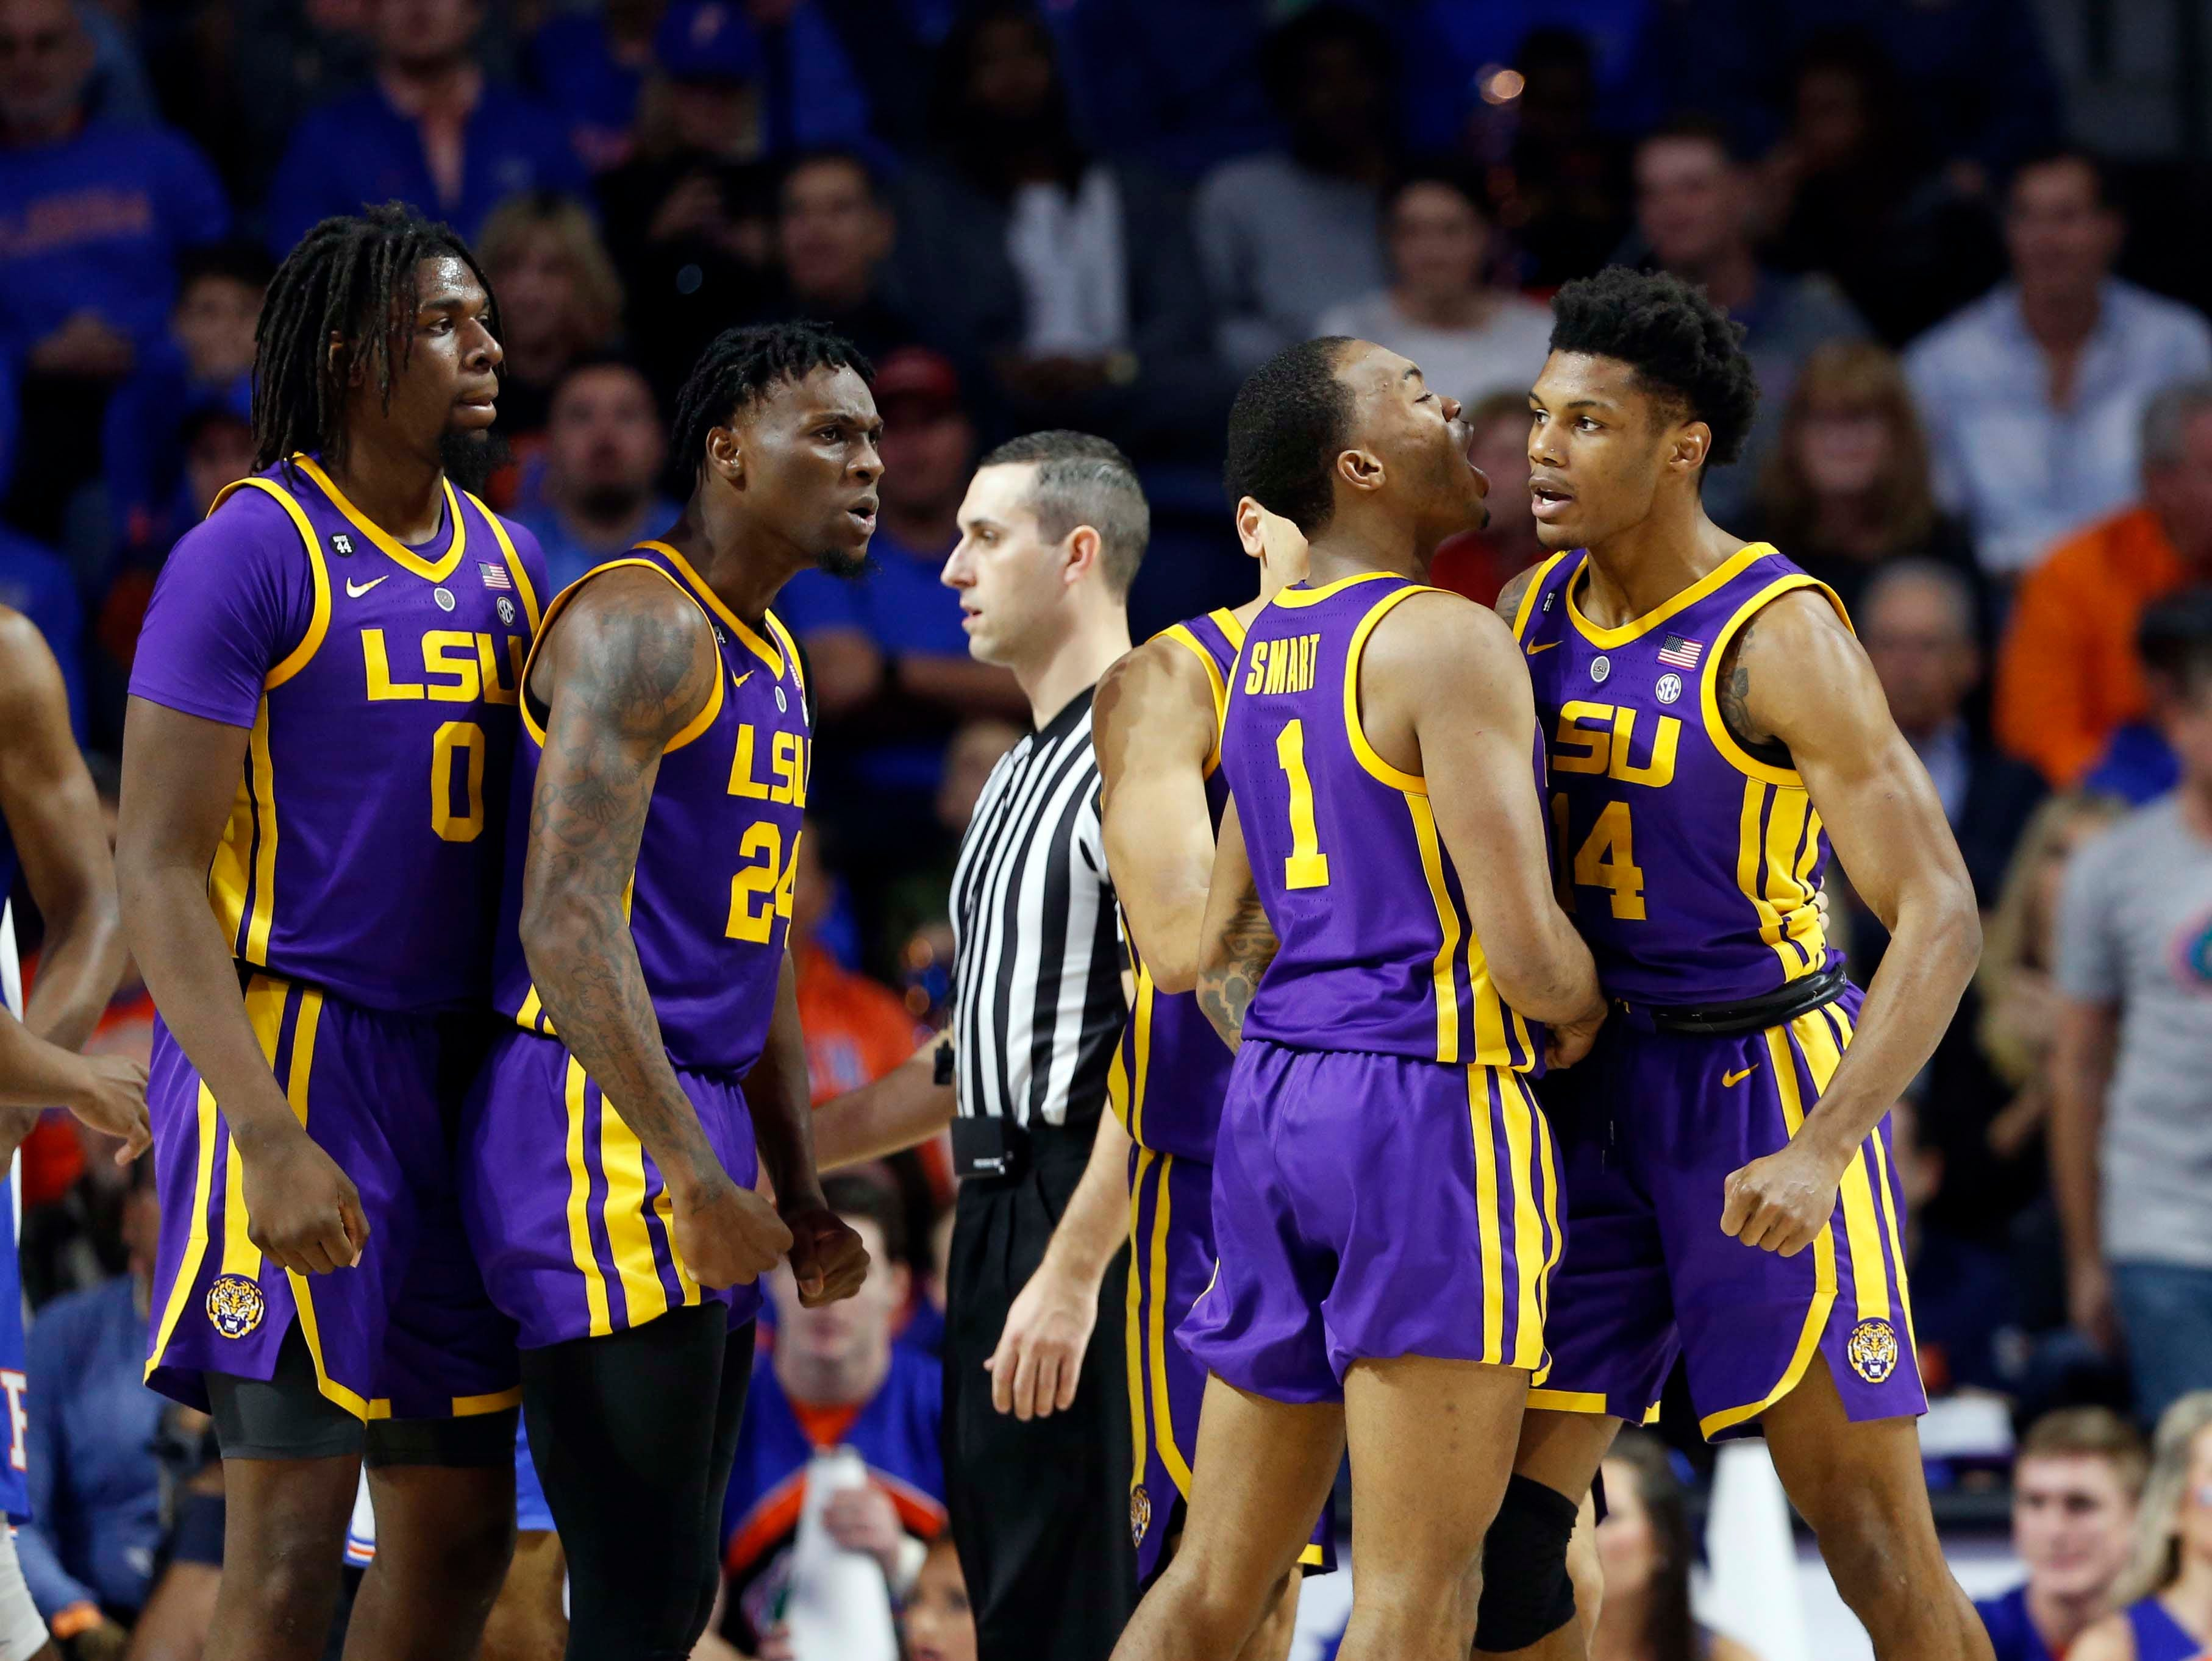 Mar 6, 2019; Gainesville, FL, USA; LSU Tigers guard Marlon Taylor (14), forward Emmitt Williams (24), guard Javonte Smart (1) and teammates celebrate against the Florida Gators during the second half at Exactech Arena. Mandatory Credit: Kim Klement-USA TODAY Sports